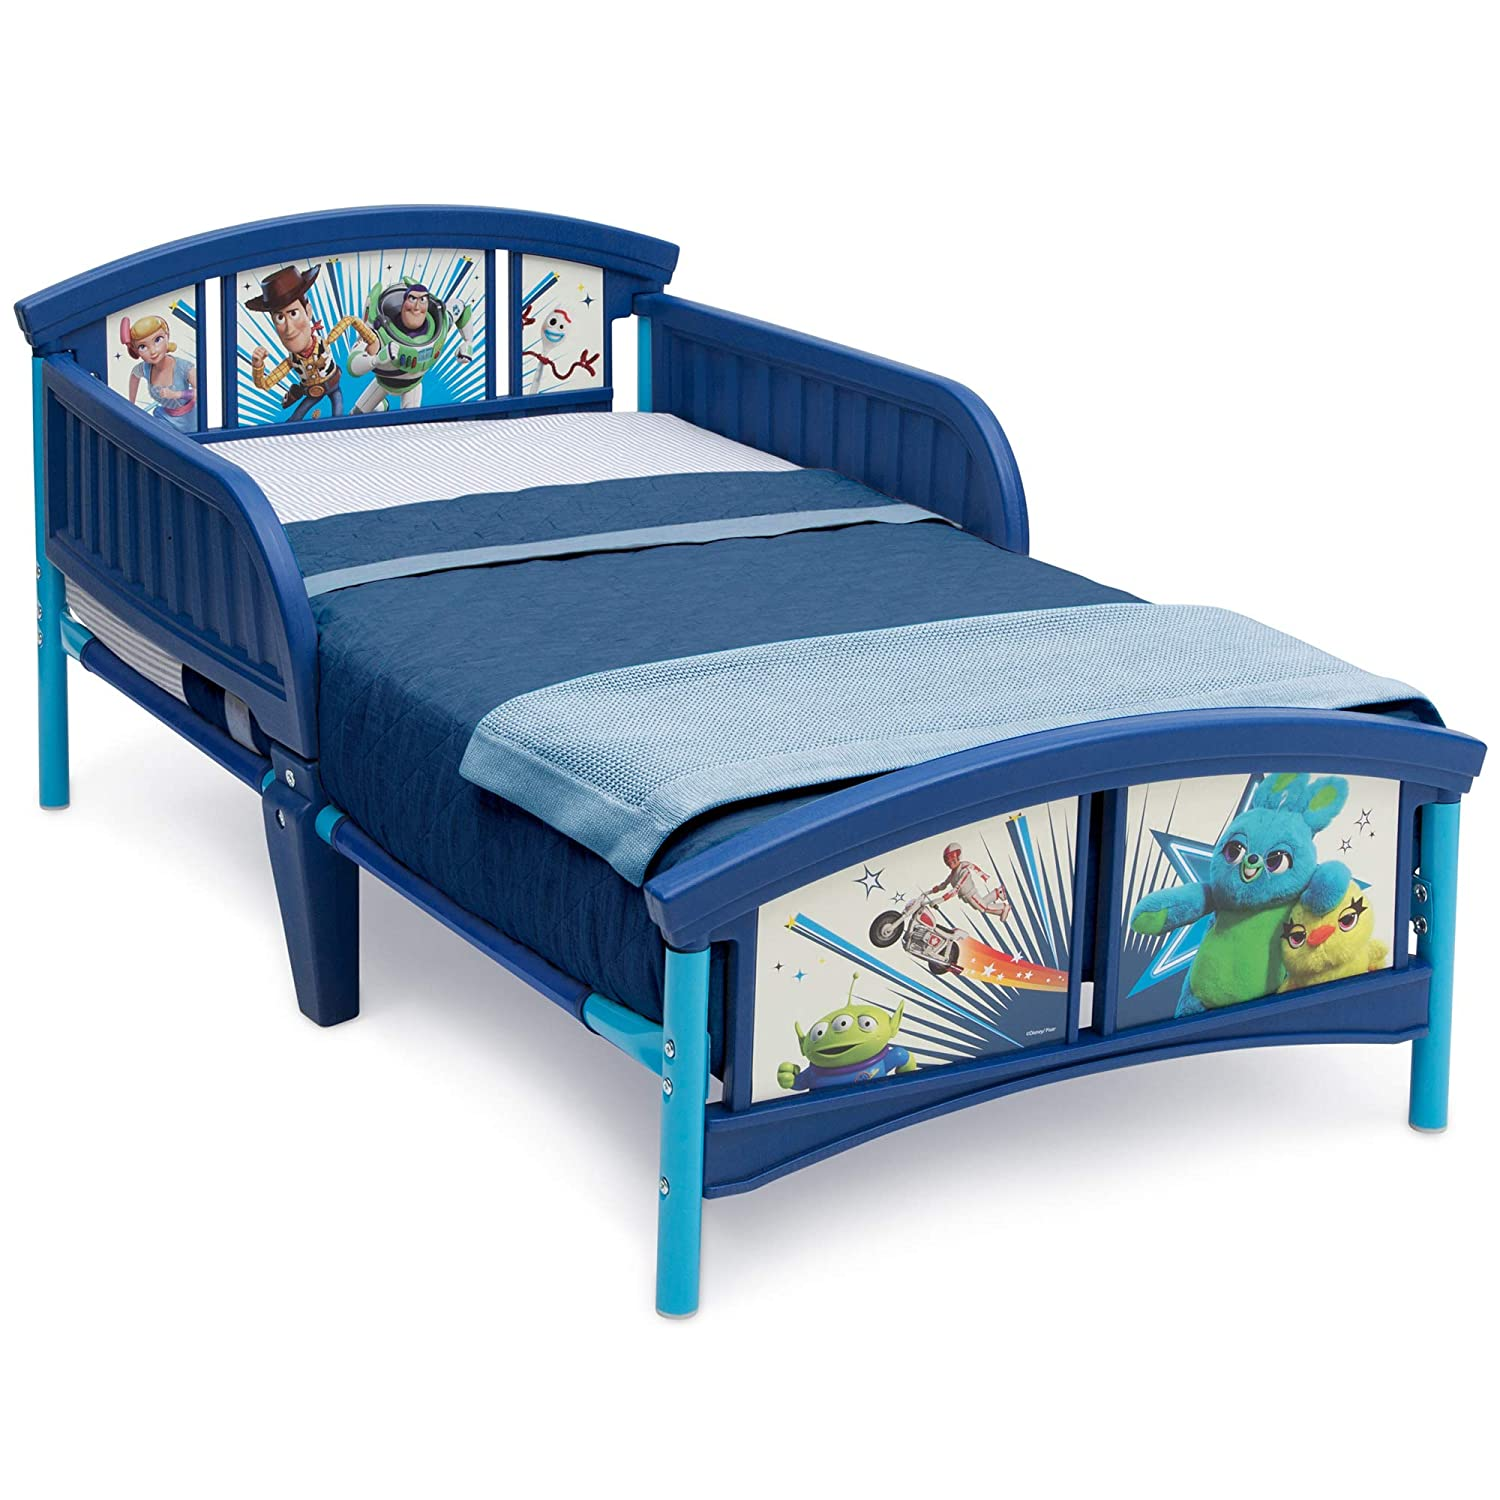 Delta Children Plastic Toddler Bed, Disney/Pixar Toy Story 4